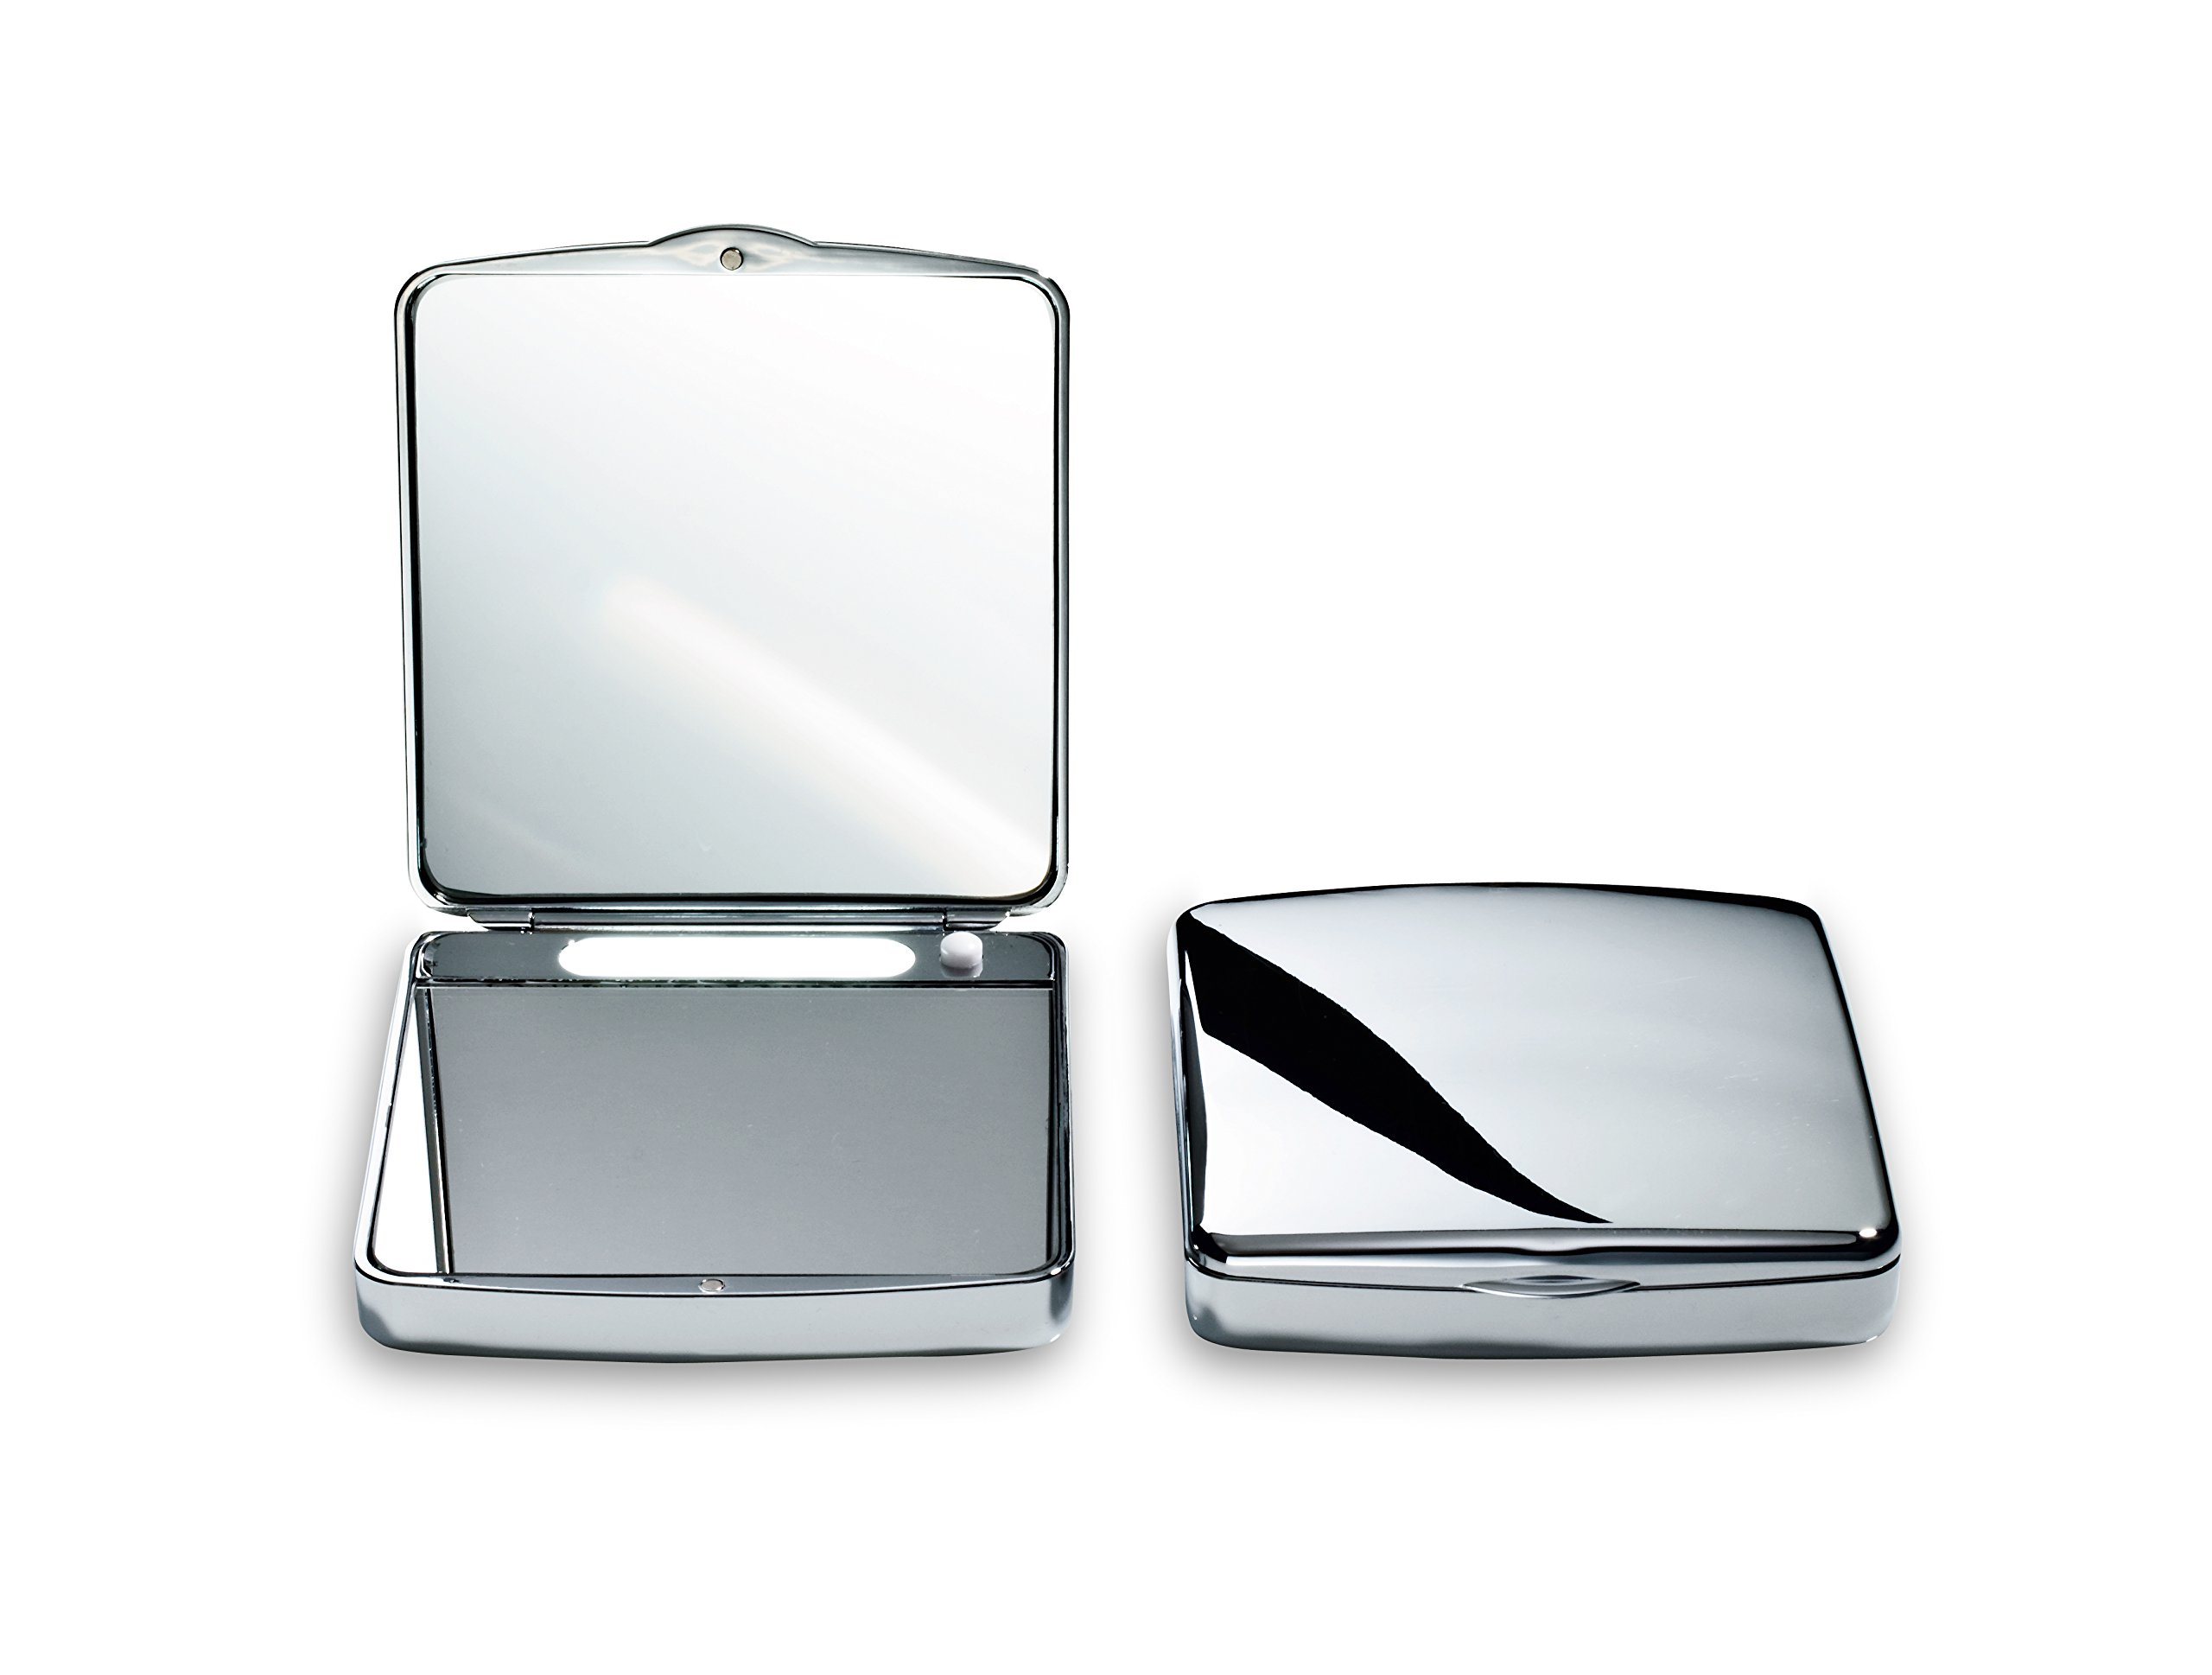 DWBA Hand Cosmetic Makeup Pocket Magnifying Mirror 7x with LED Light. Lighted Makeup Mirror. Compact Mirror. Polished Chrome by DWBA Bath Collection